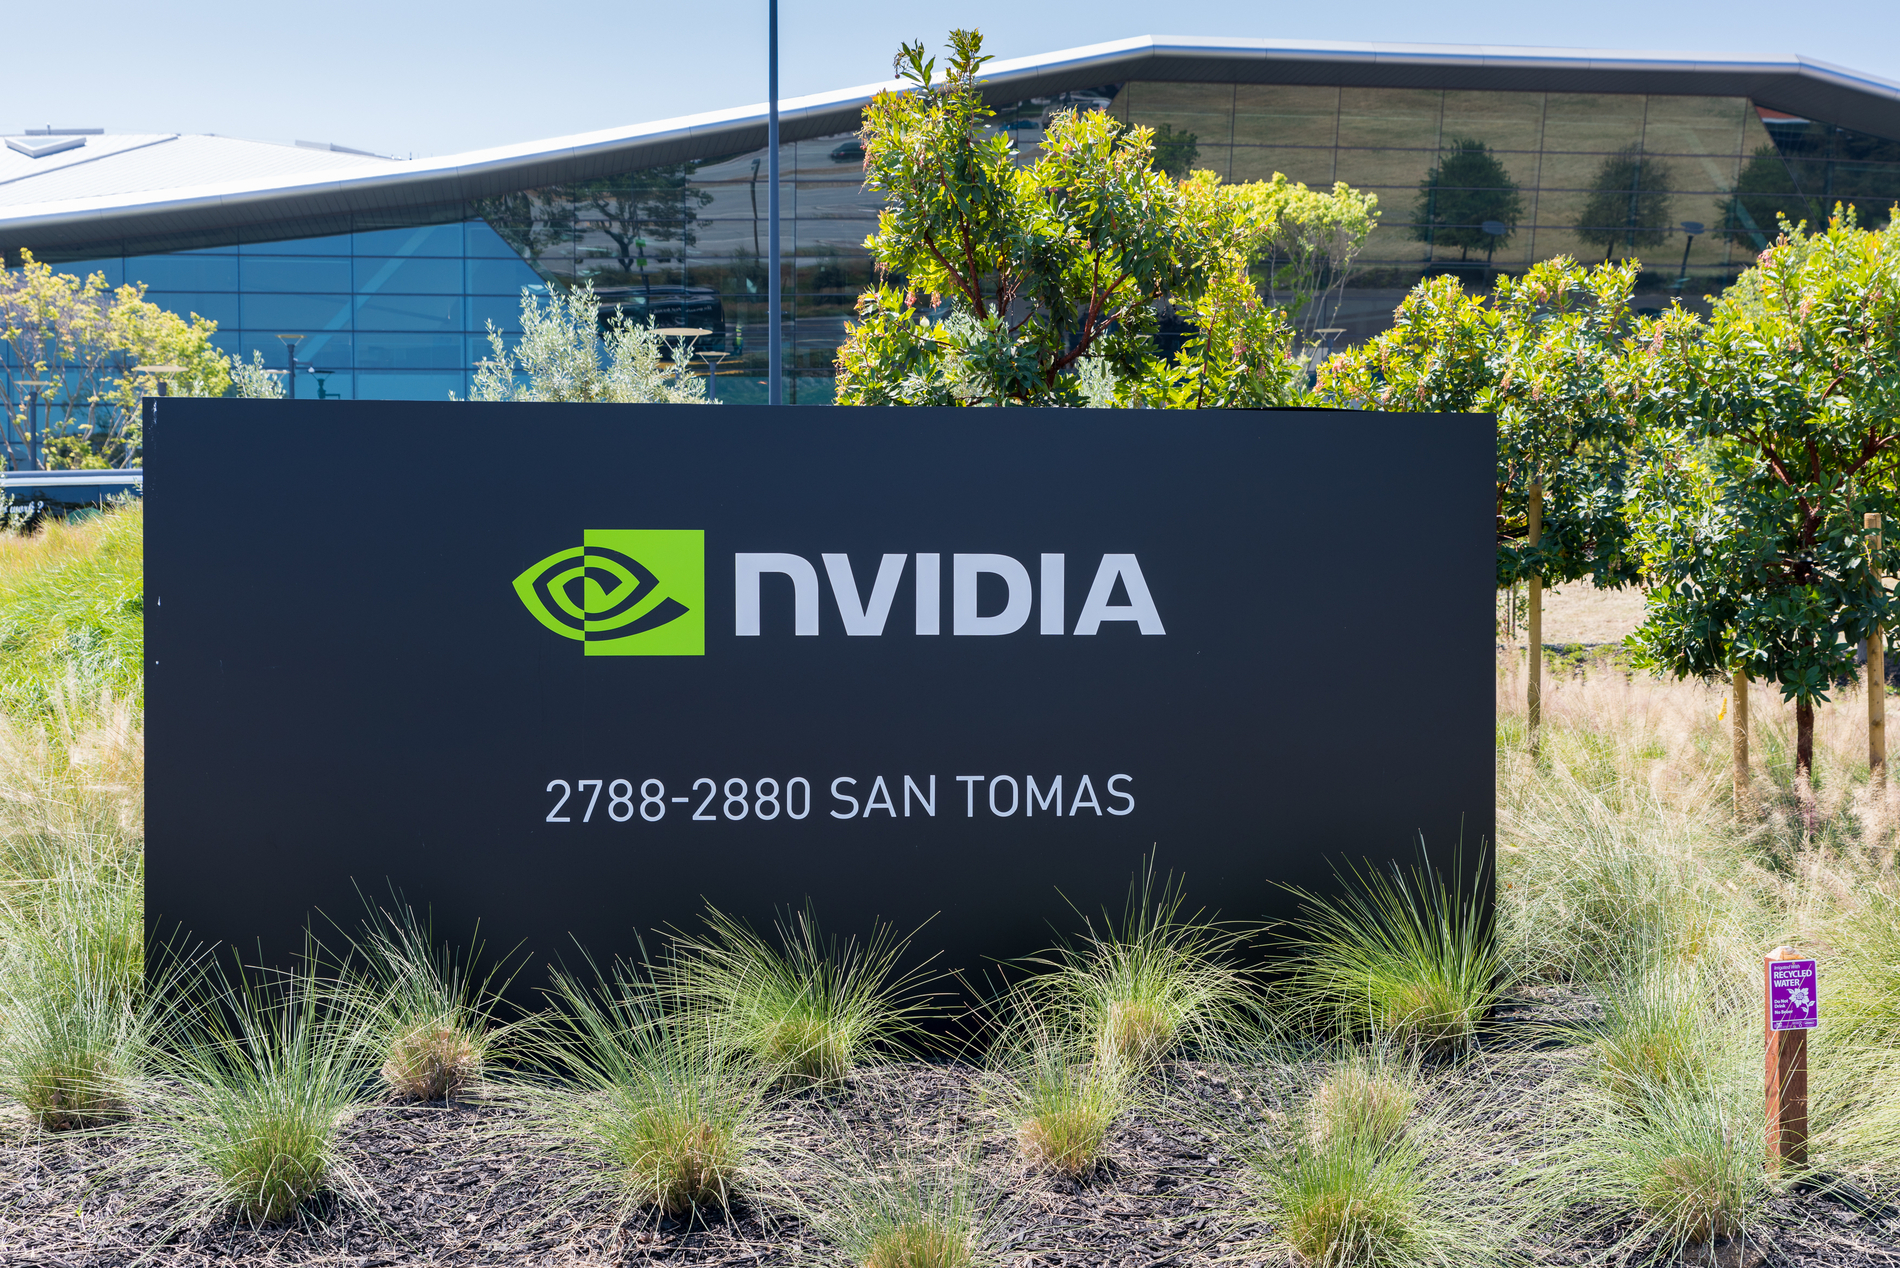 Nvidia Q2 Revenue Jumps 68% but Crypto-Related Earnings Fall Short of Expectation